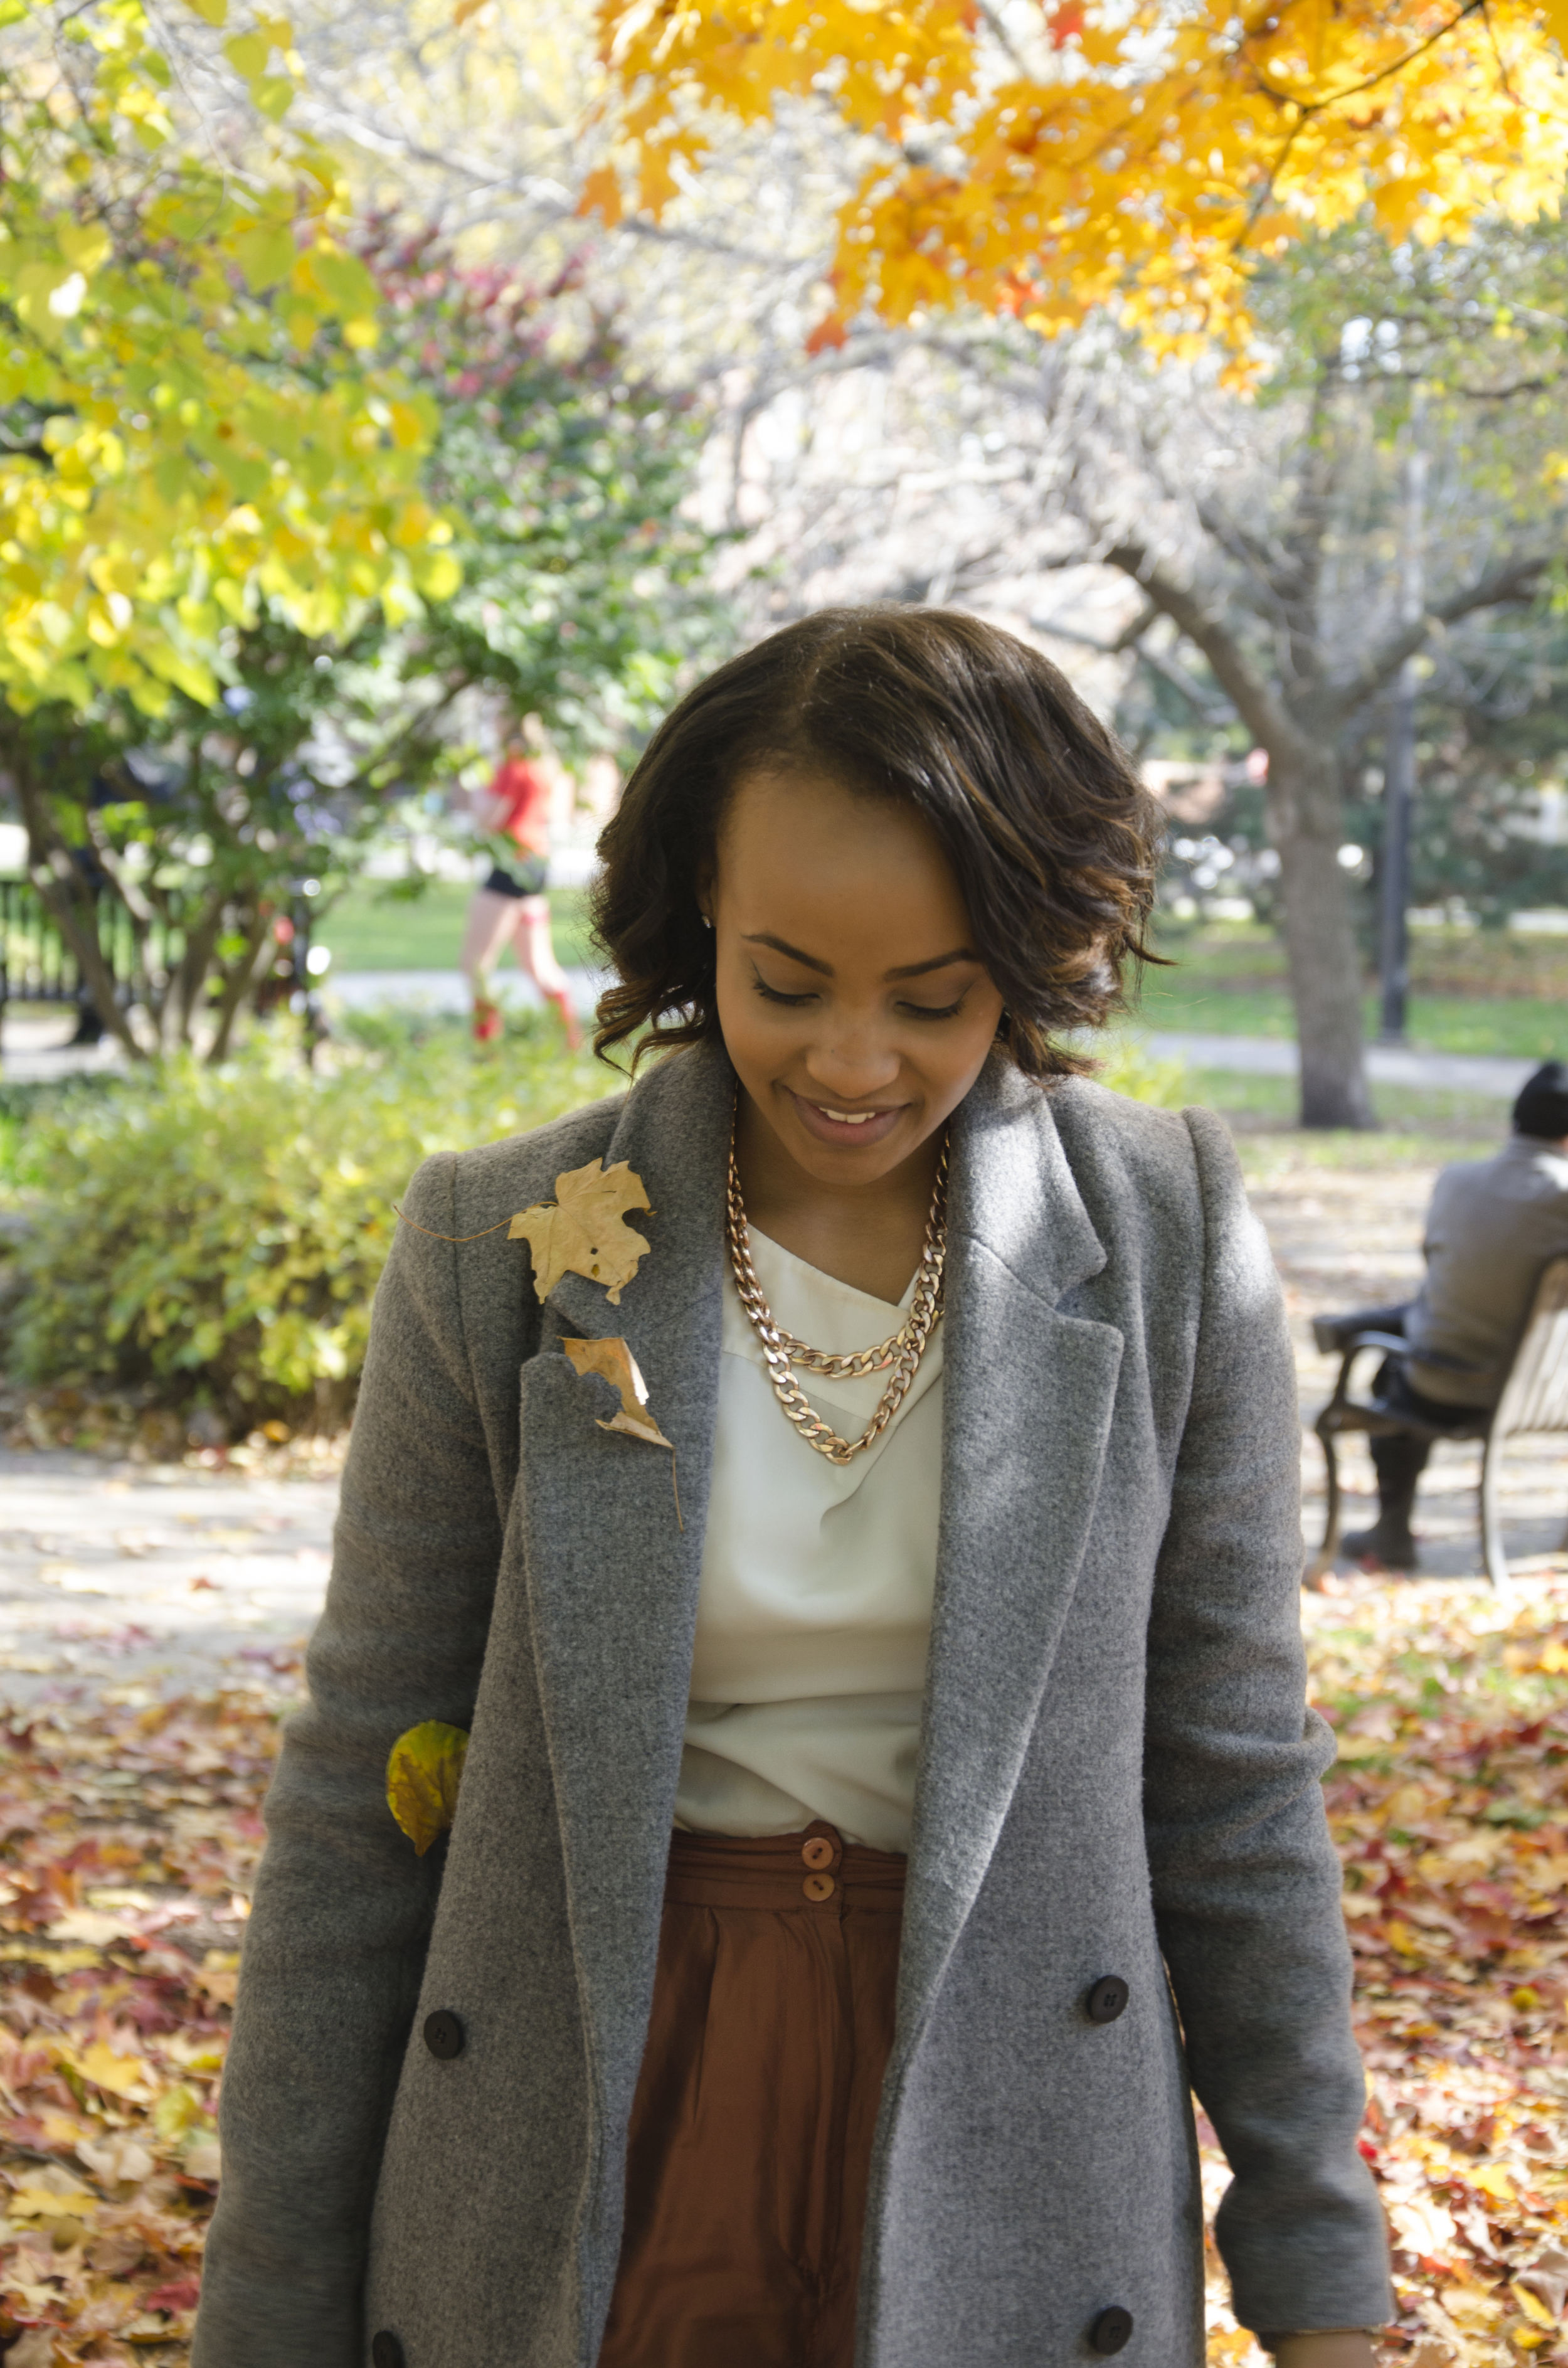 Necklace:Baublebar /Shirt: Thrifted/Pants: Diane Gilman (thrifted)/Coat: Zara